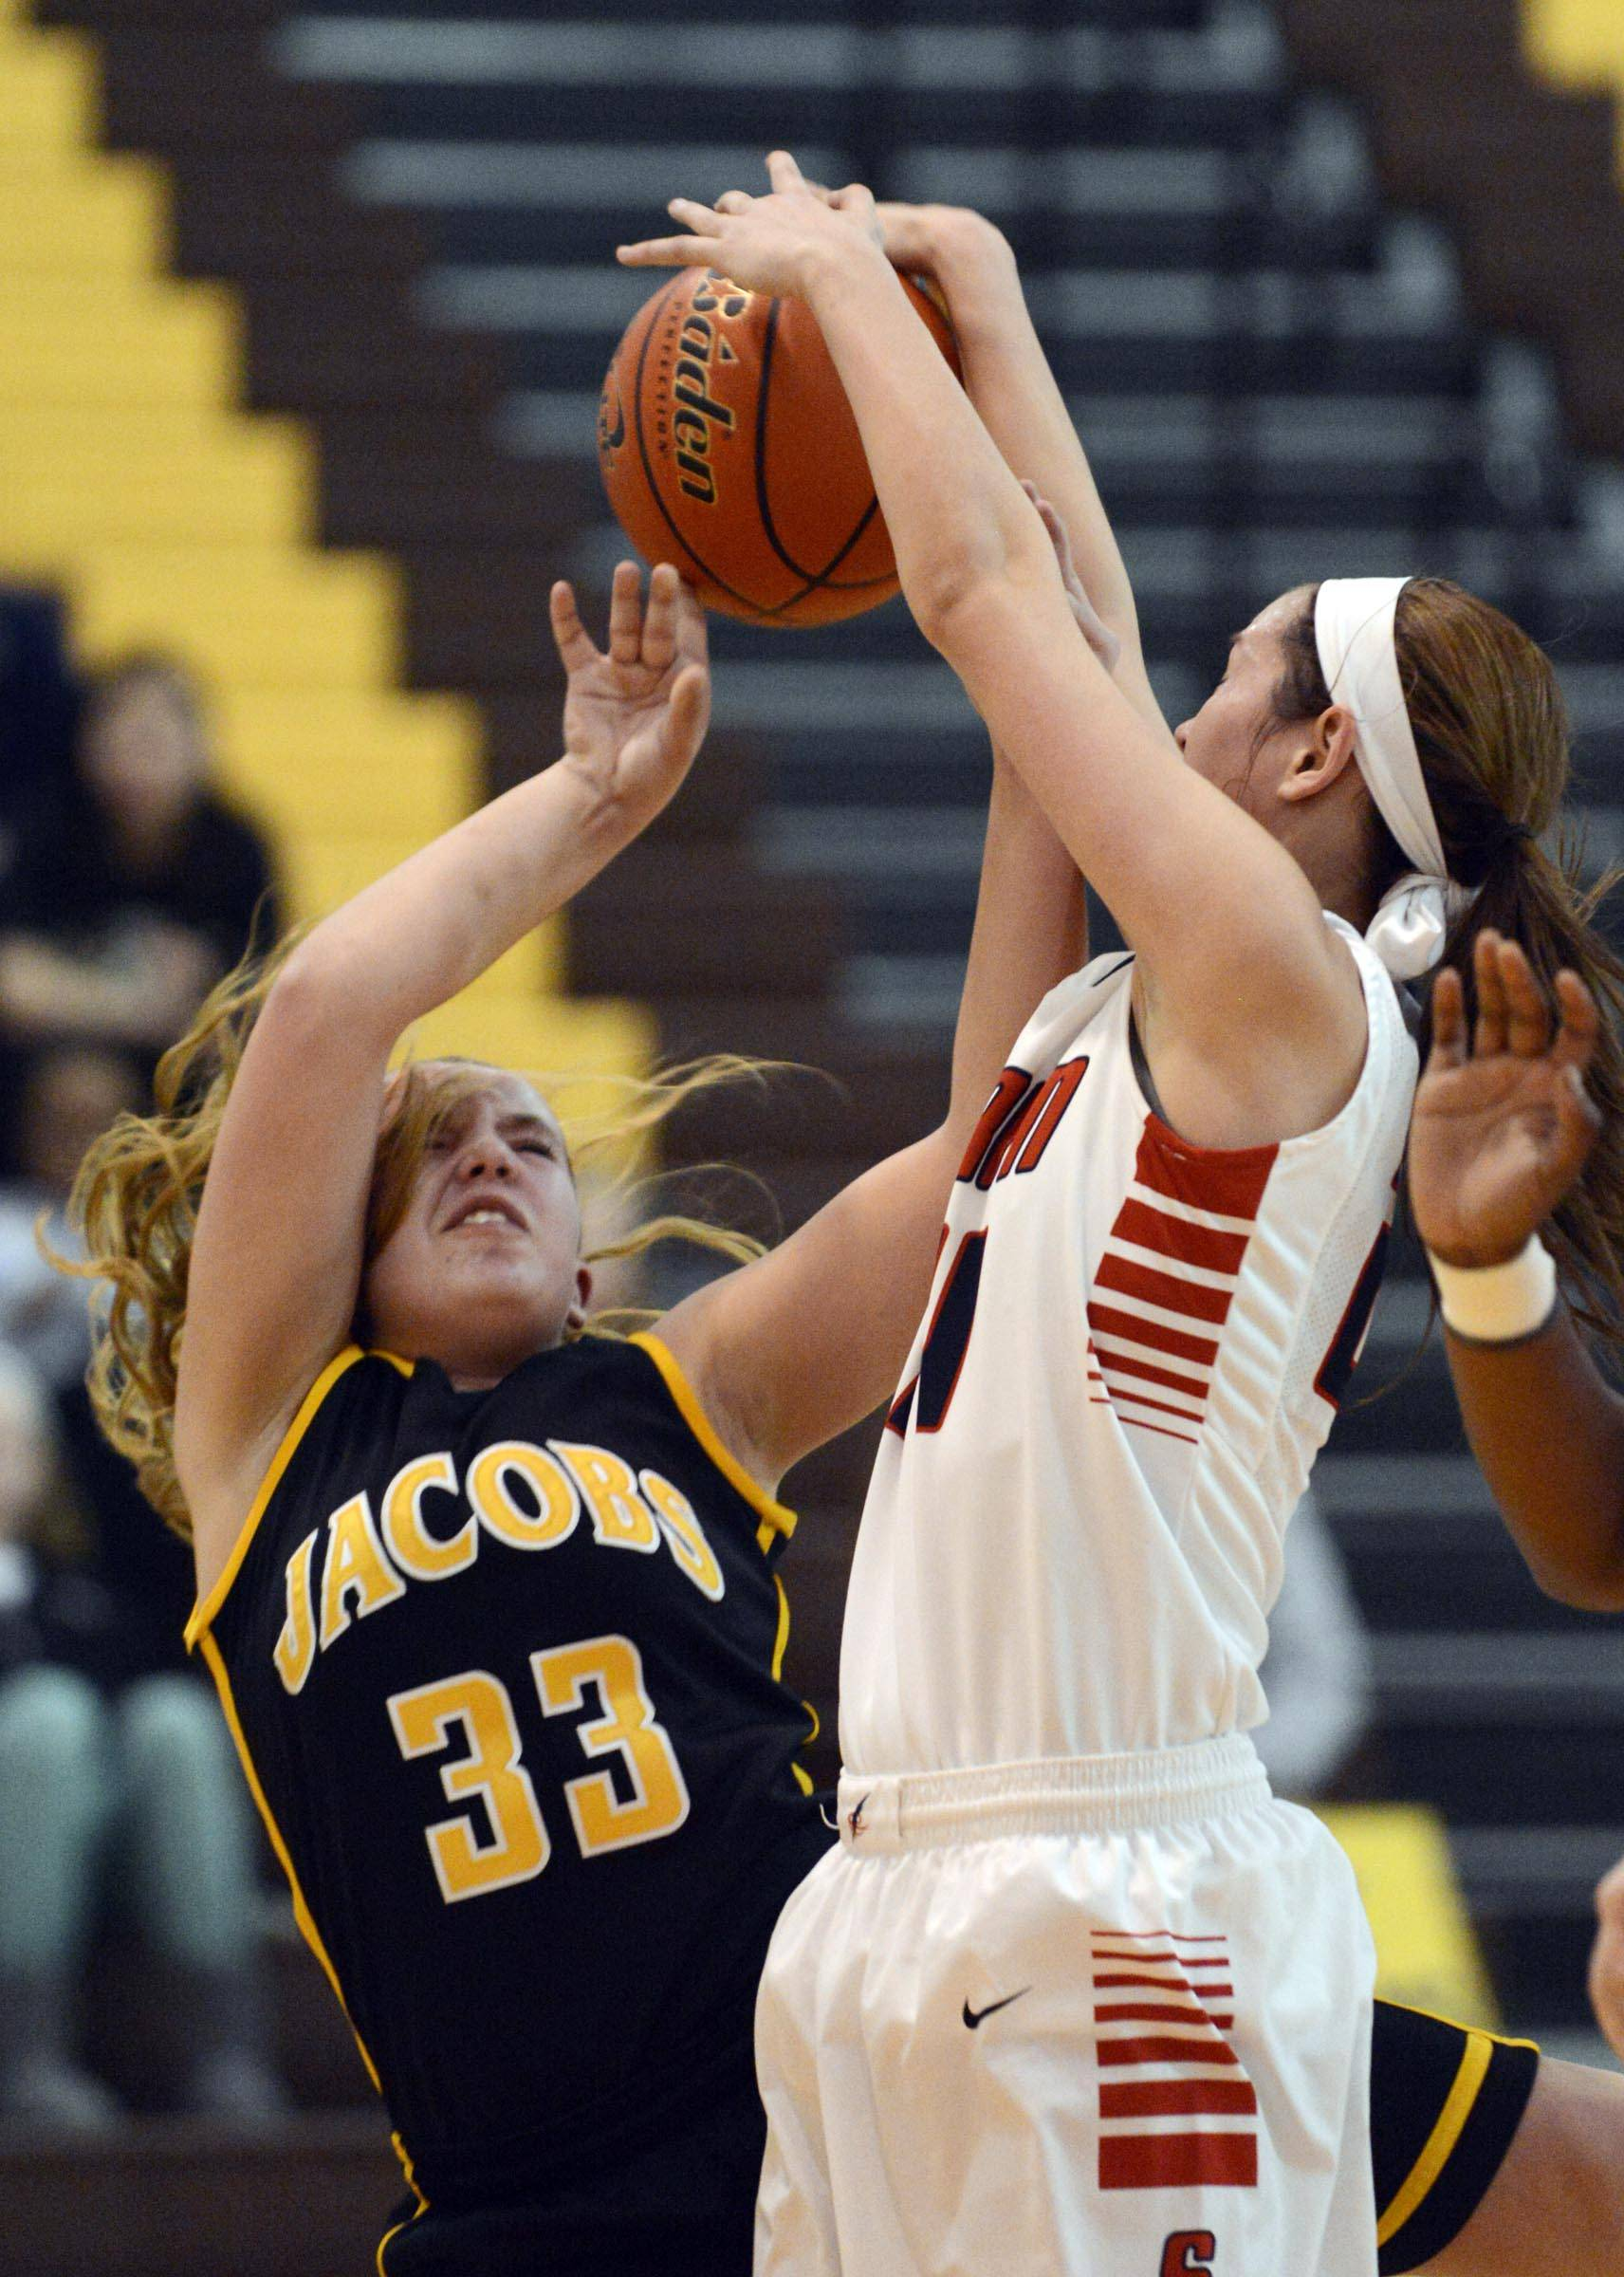 South Elgin's Kennede Miller blocks a shot by Jacobs' Jessica Powell Tuesday in a Regional semifinal game in Algonquin.